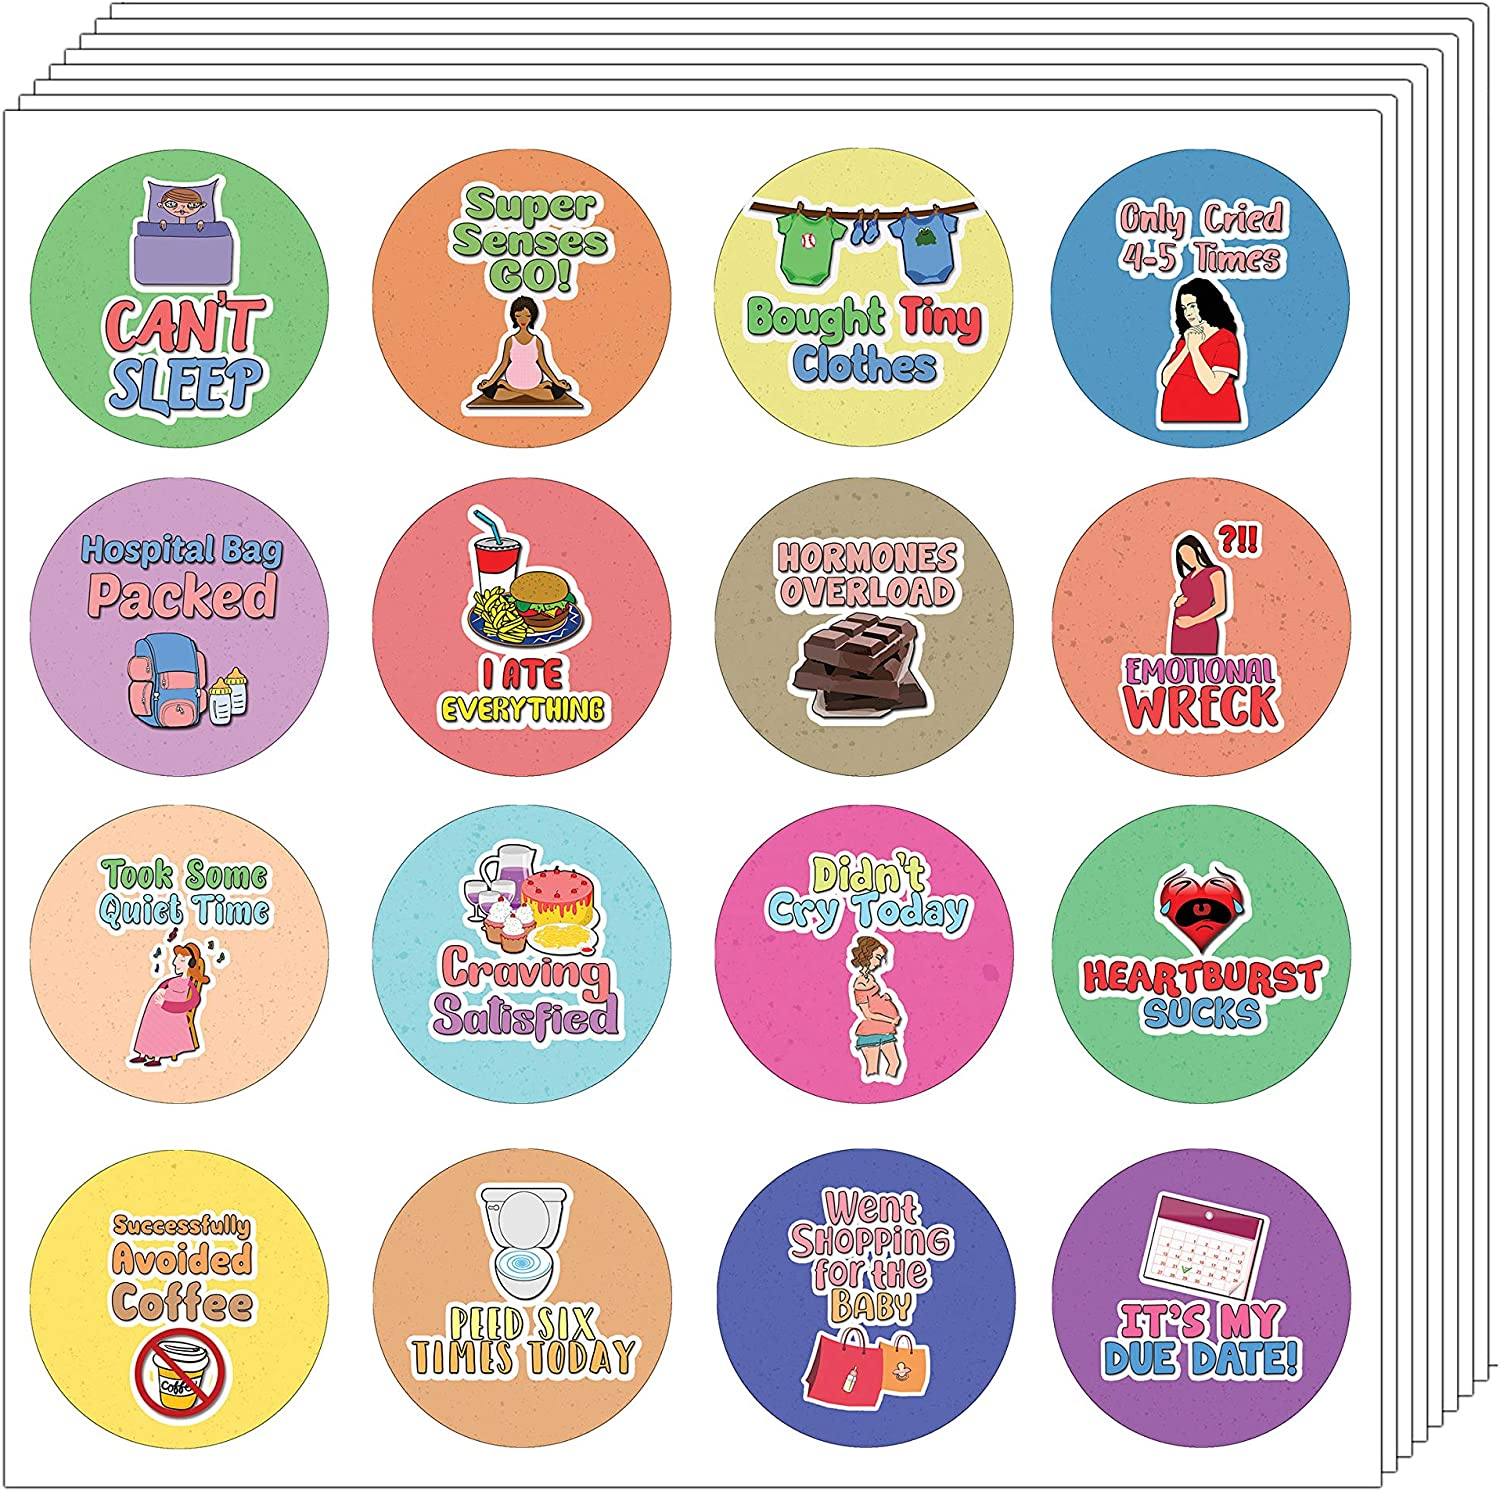 Unique Personalized Themes Designs Total 120 pcs 10-Sheet Inches Any Flat Surface DIY Decoration Art Decal for Boys /& Girls Individual Small Size 2.1 x 2 Creanoso Funny Stickers Series 1 Sarcasm Children 10 X 12pcs Teens Waterproof